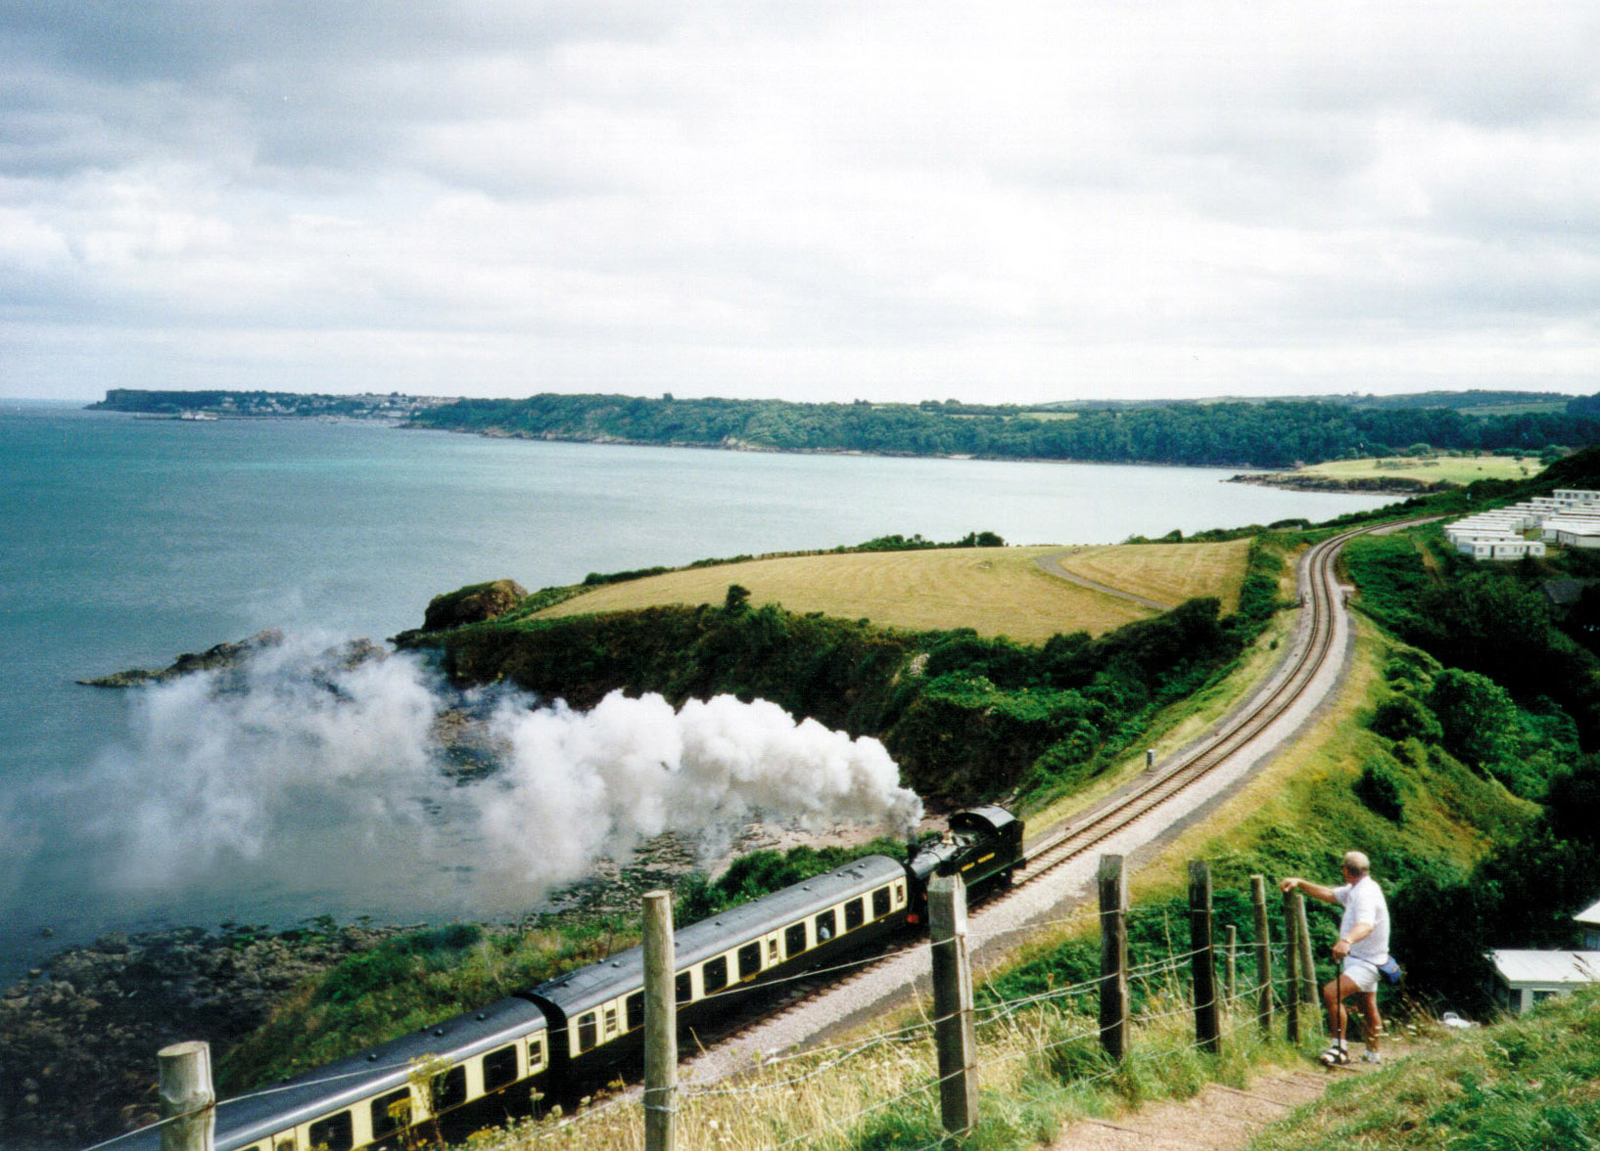 A romantic view of a steam train passing along the coast between Paignton and Dartmouth